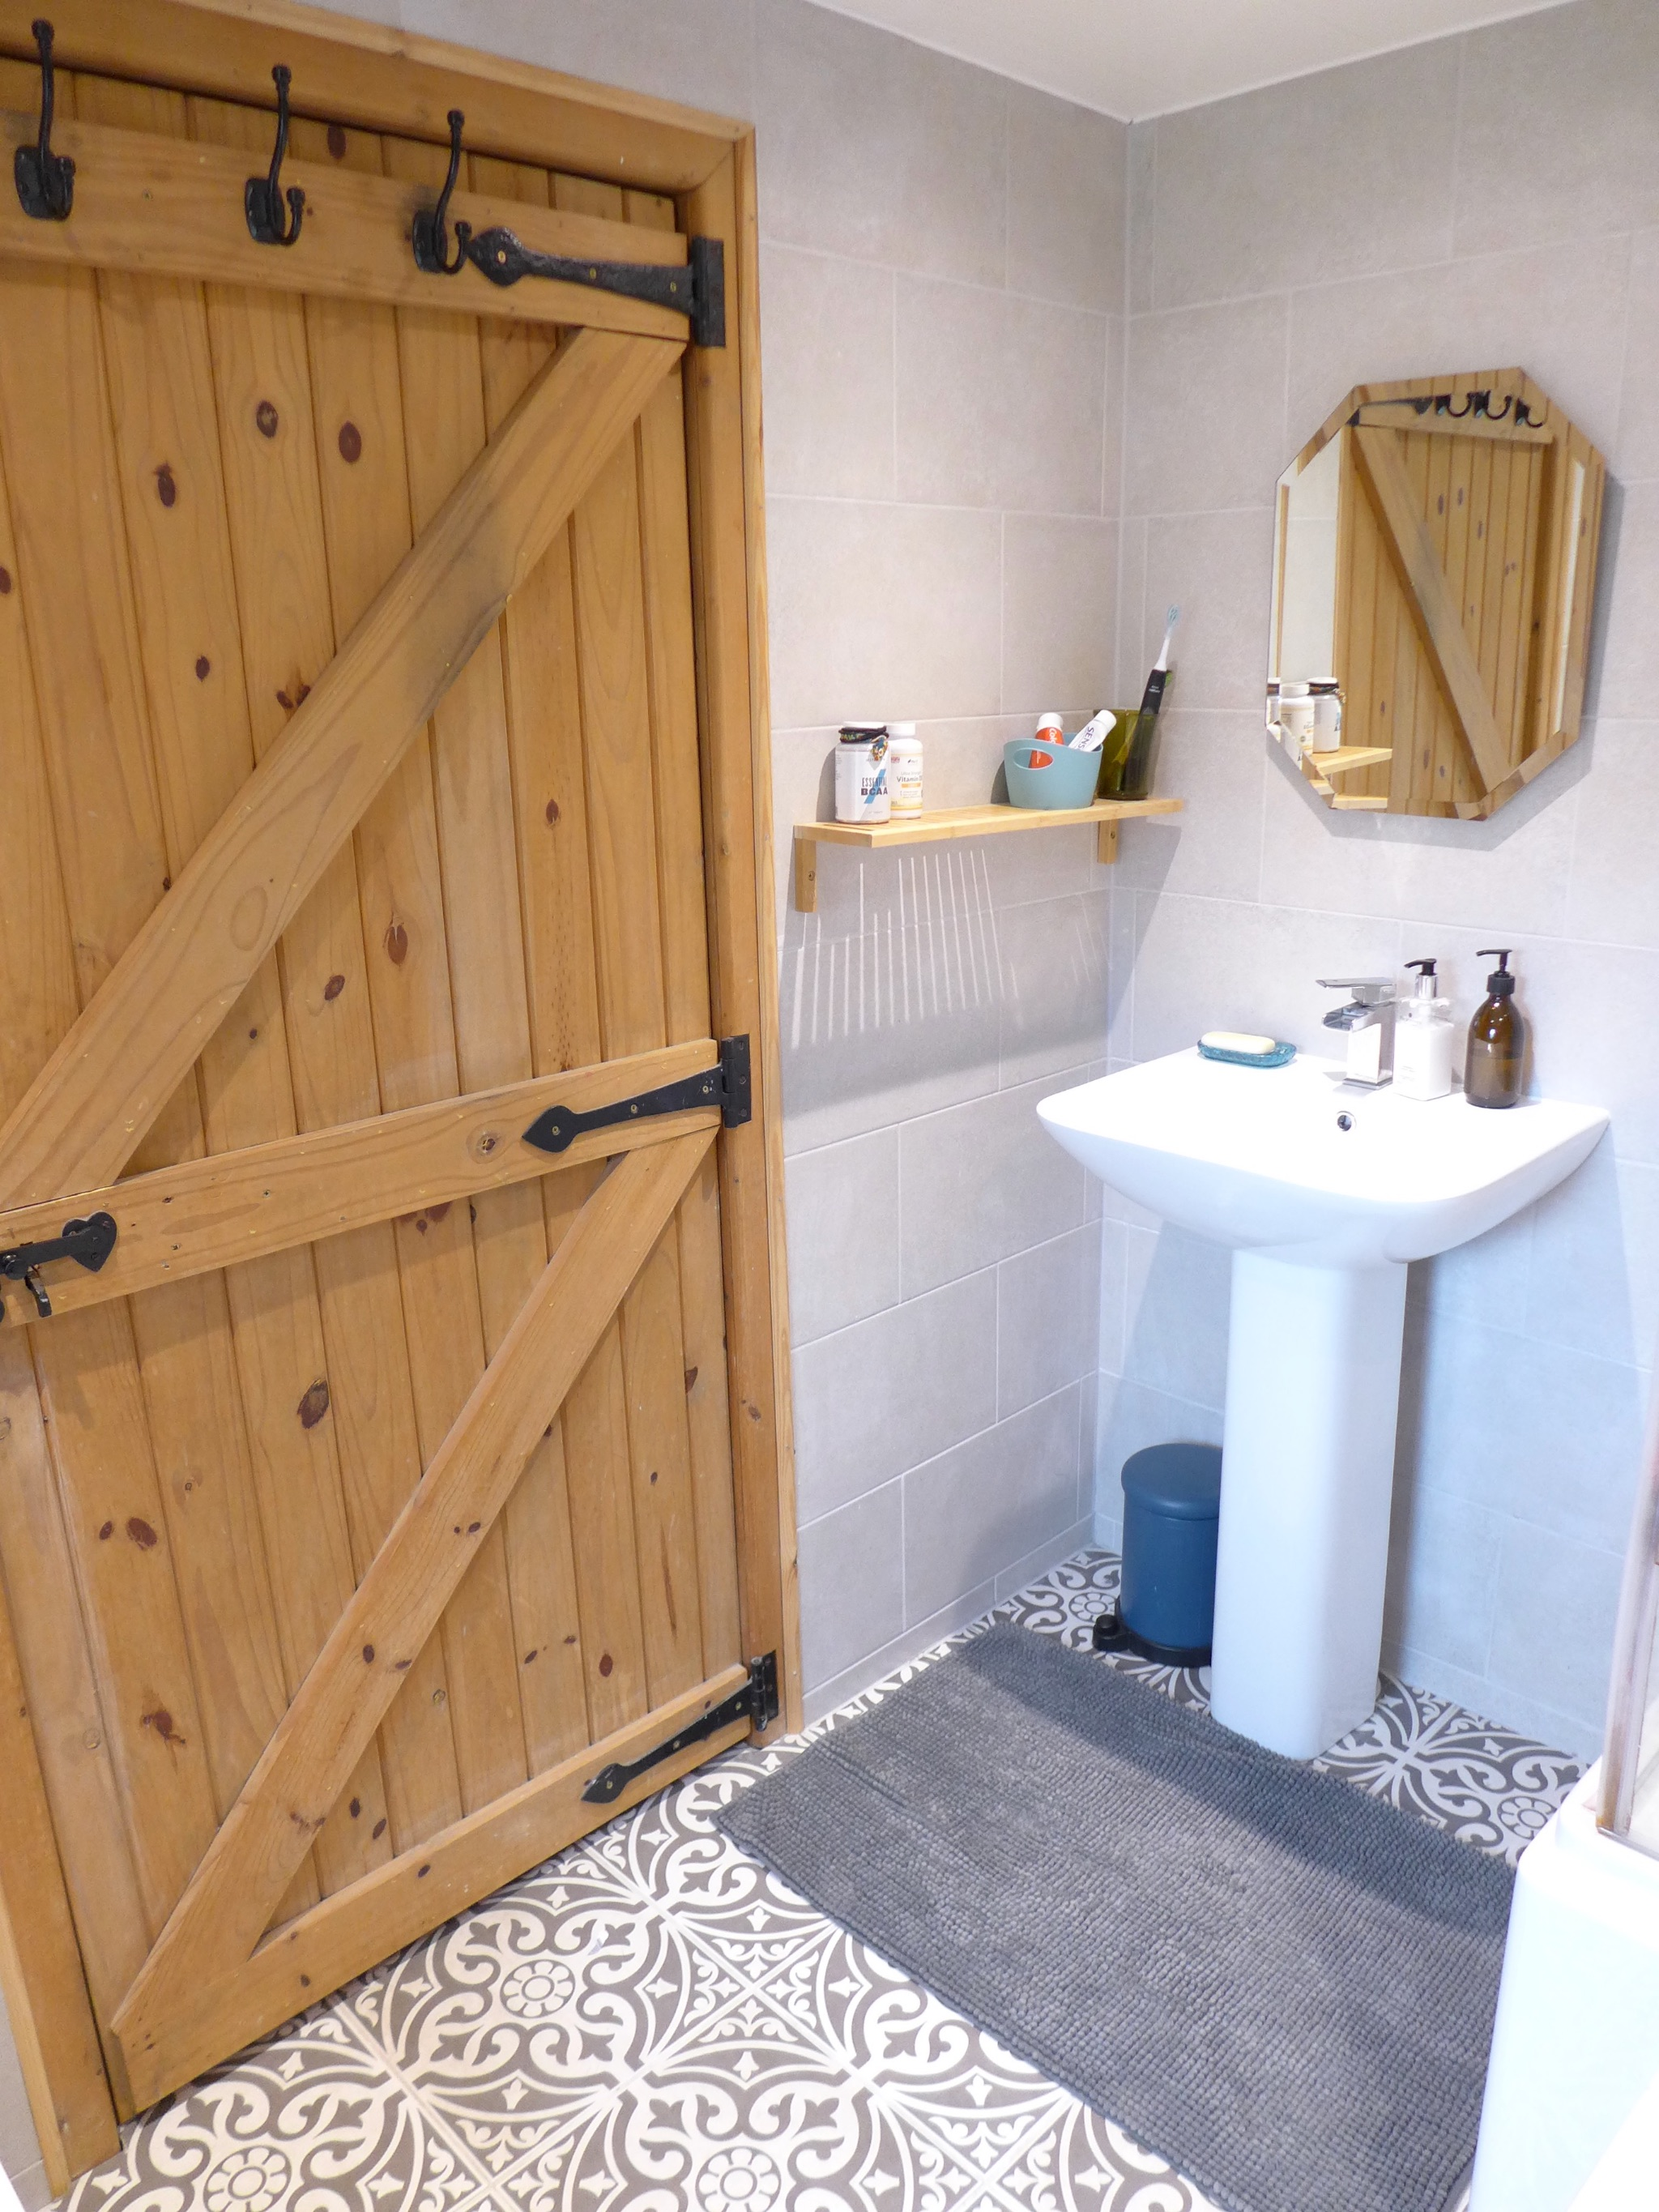 2 bedroom cottage house For Sale in Calderdale - Photograph 17.